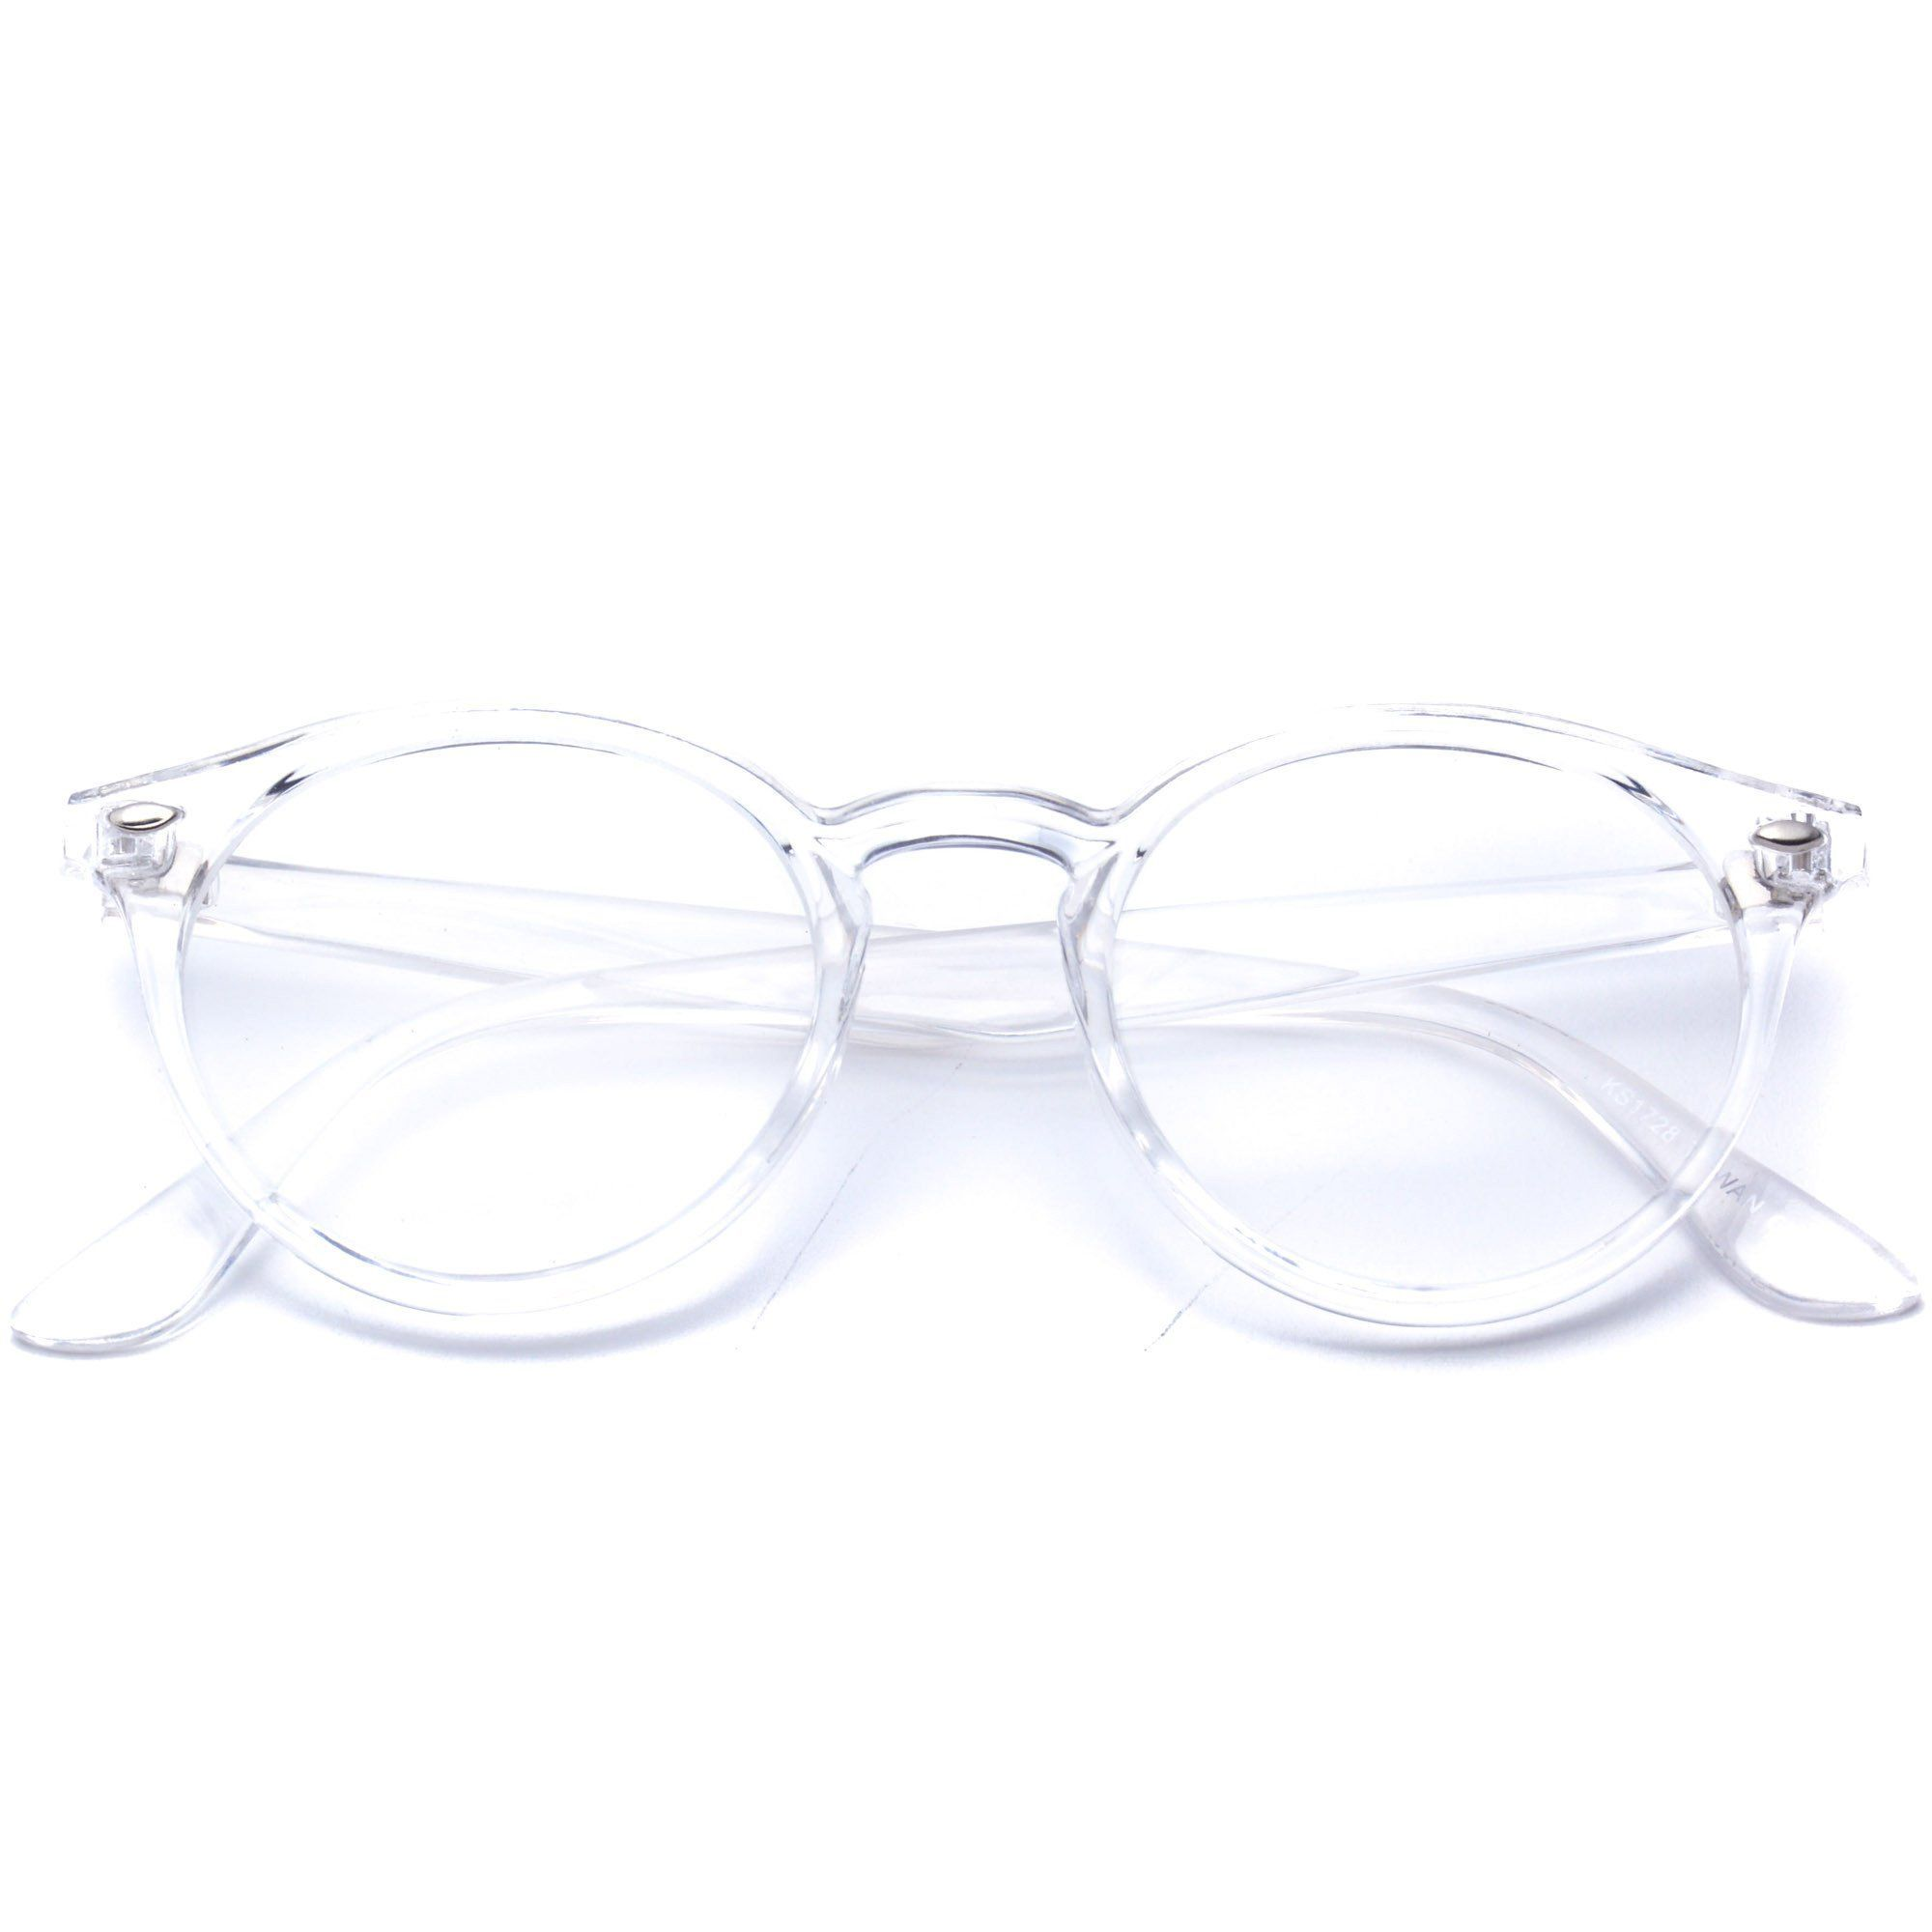 Clear glasses with clear transparent frame, round glasses, circle ...